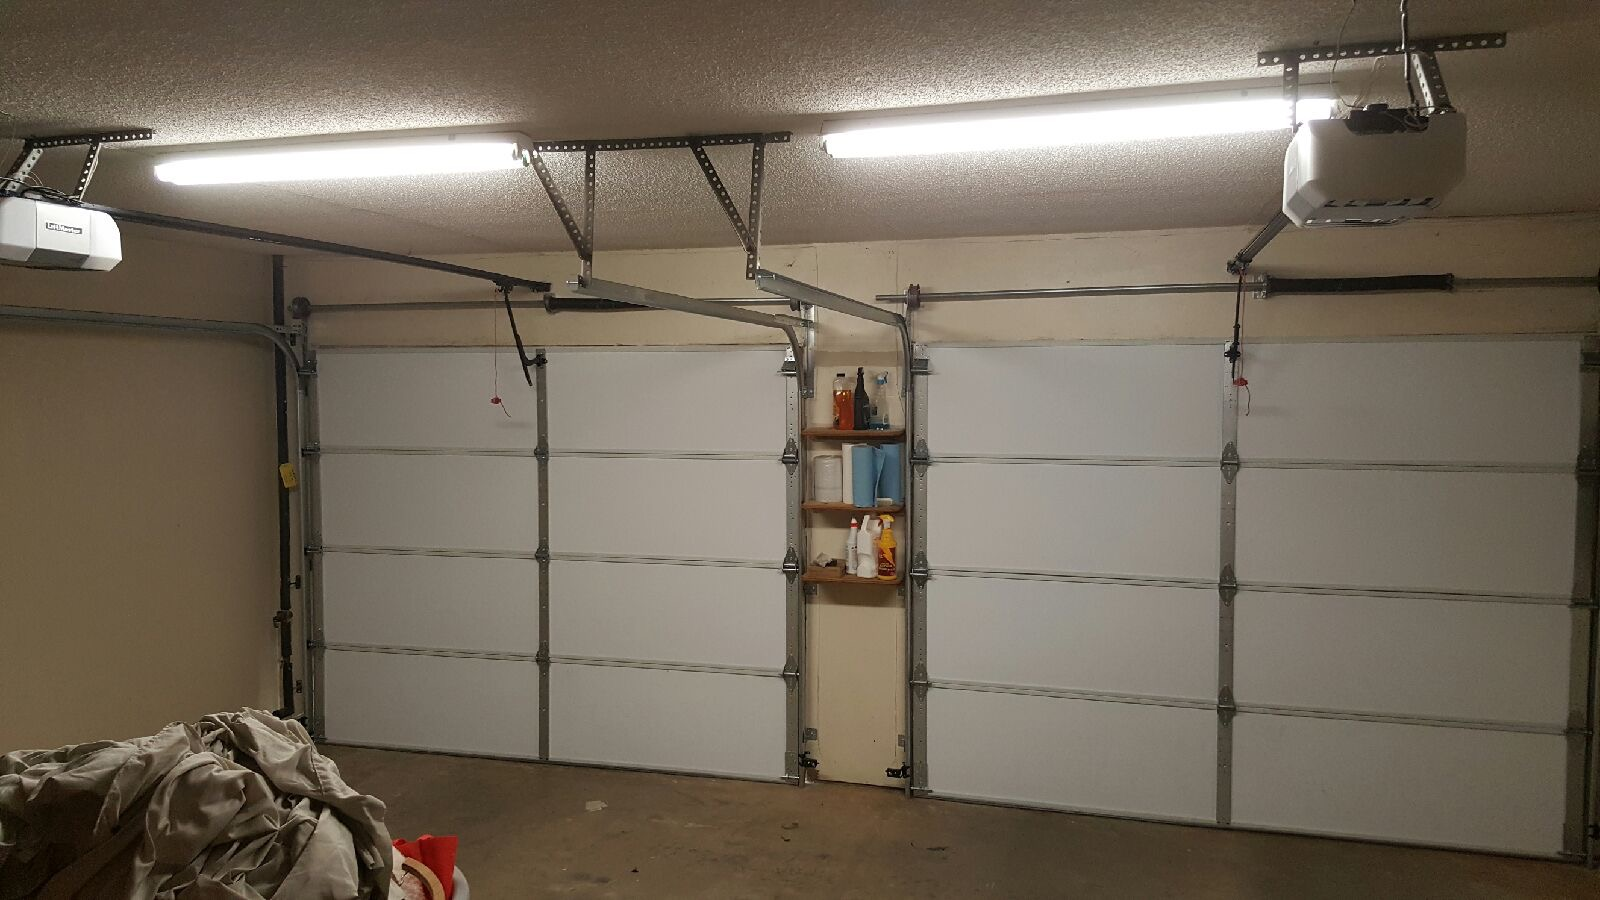 Peachtree Door Repair  Overhead Door Repair Garage Repair